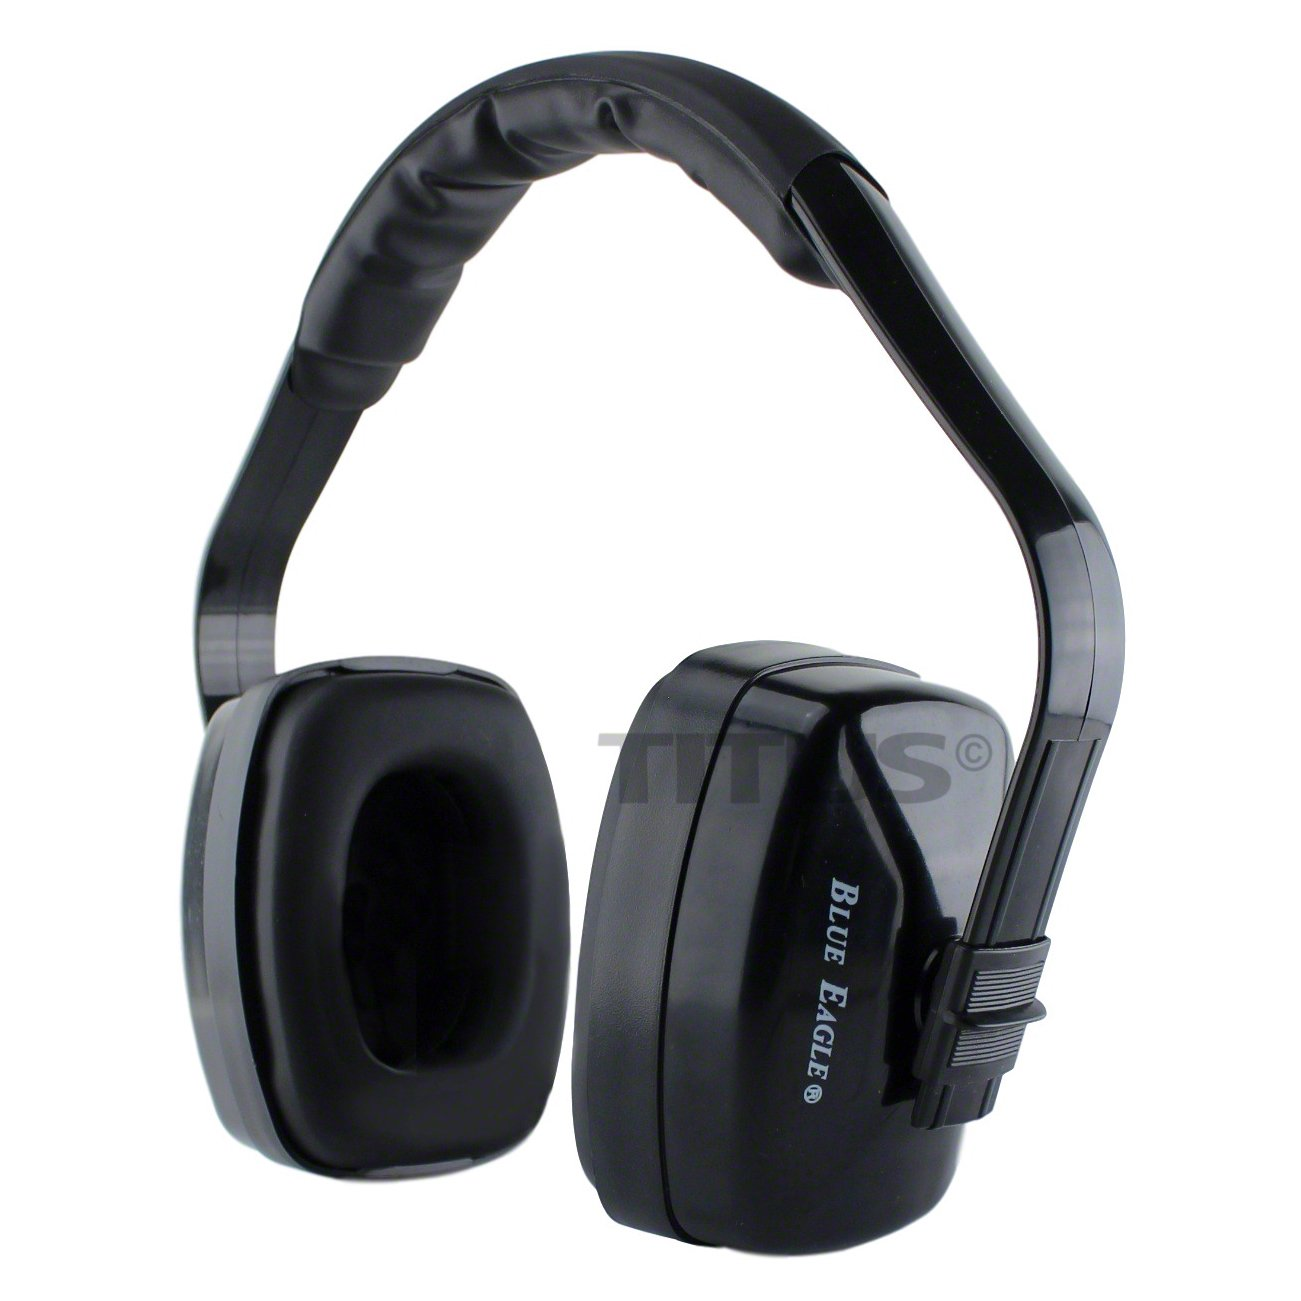 Titus XL Earmuffs - Blue Eagle 24 NRR Rated - Hearing Protection